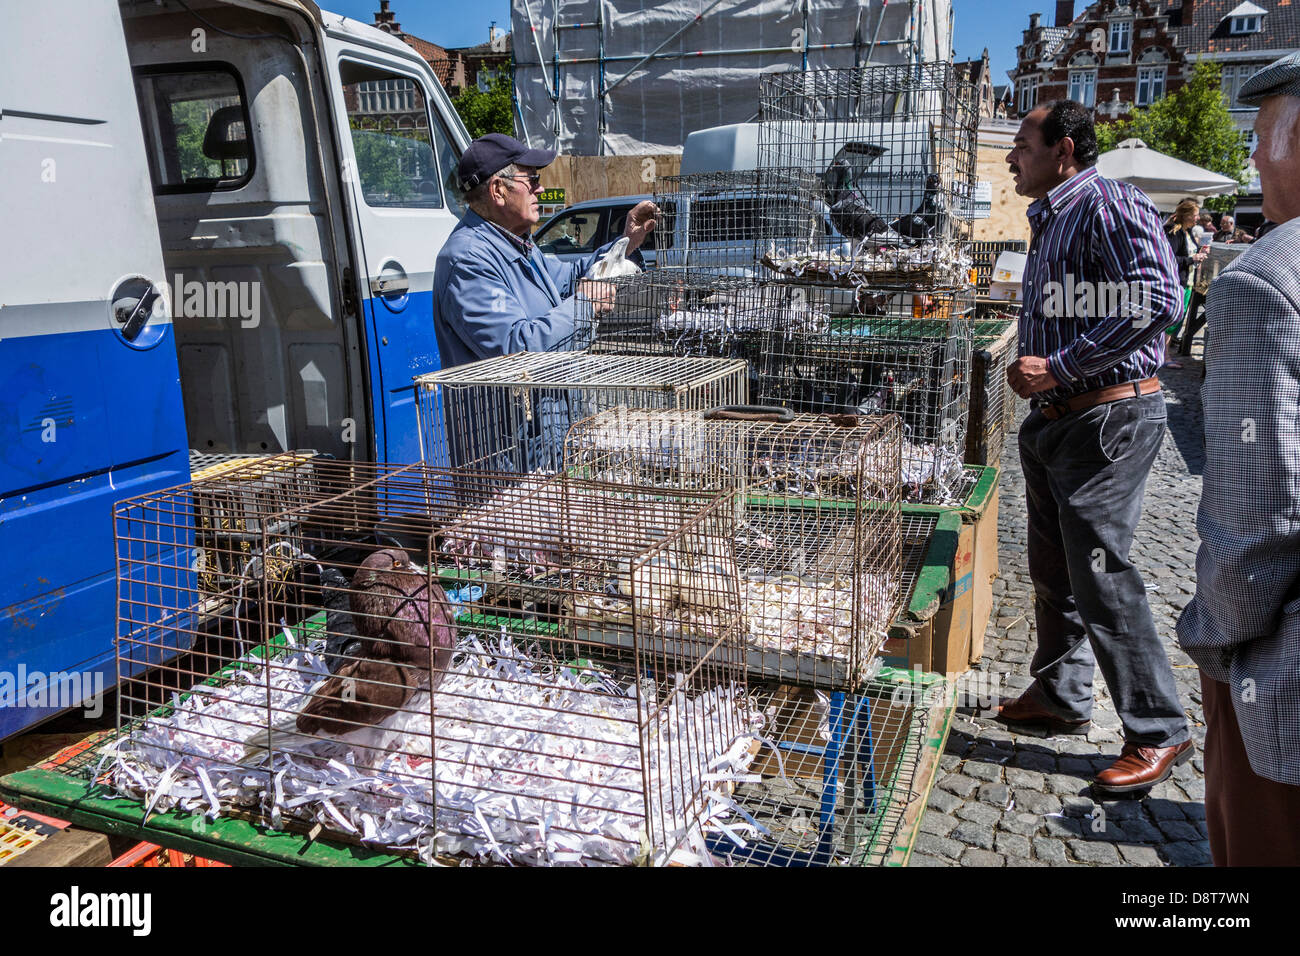 Stallholder at poultry stand selling chickens in cages to immigrant at domestic animal market in Europe - Stock Image